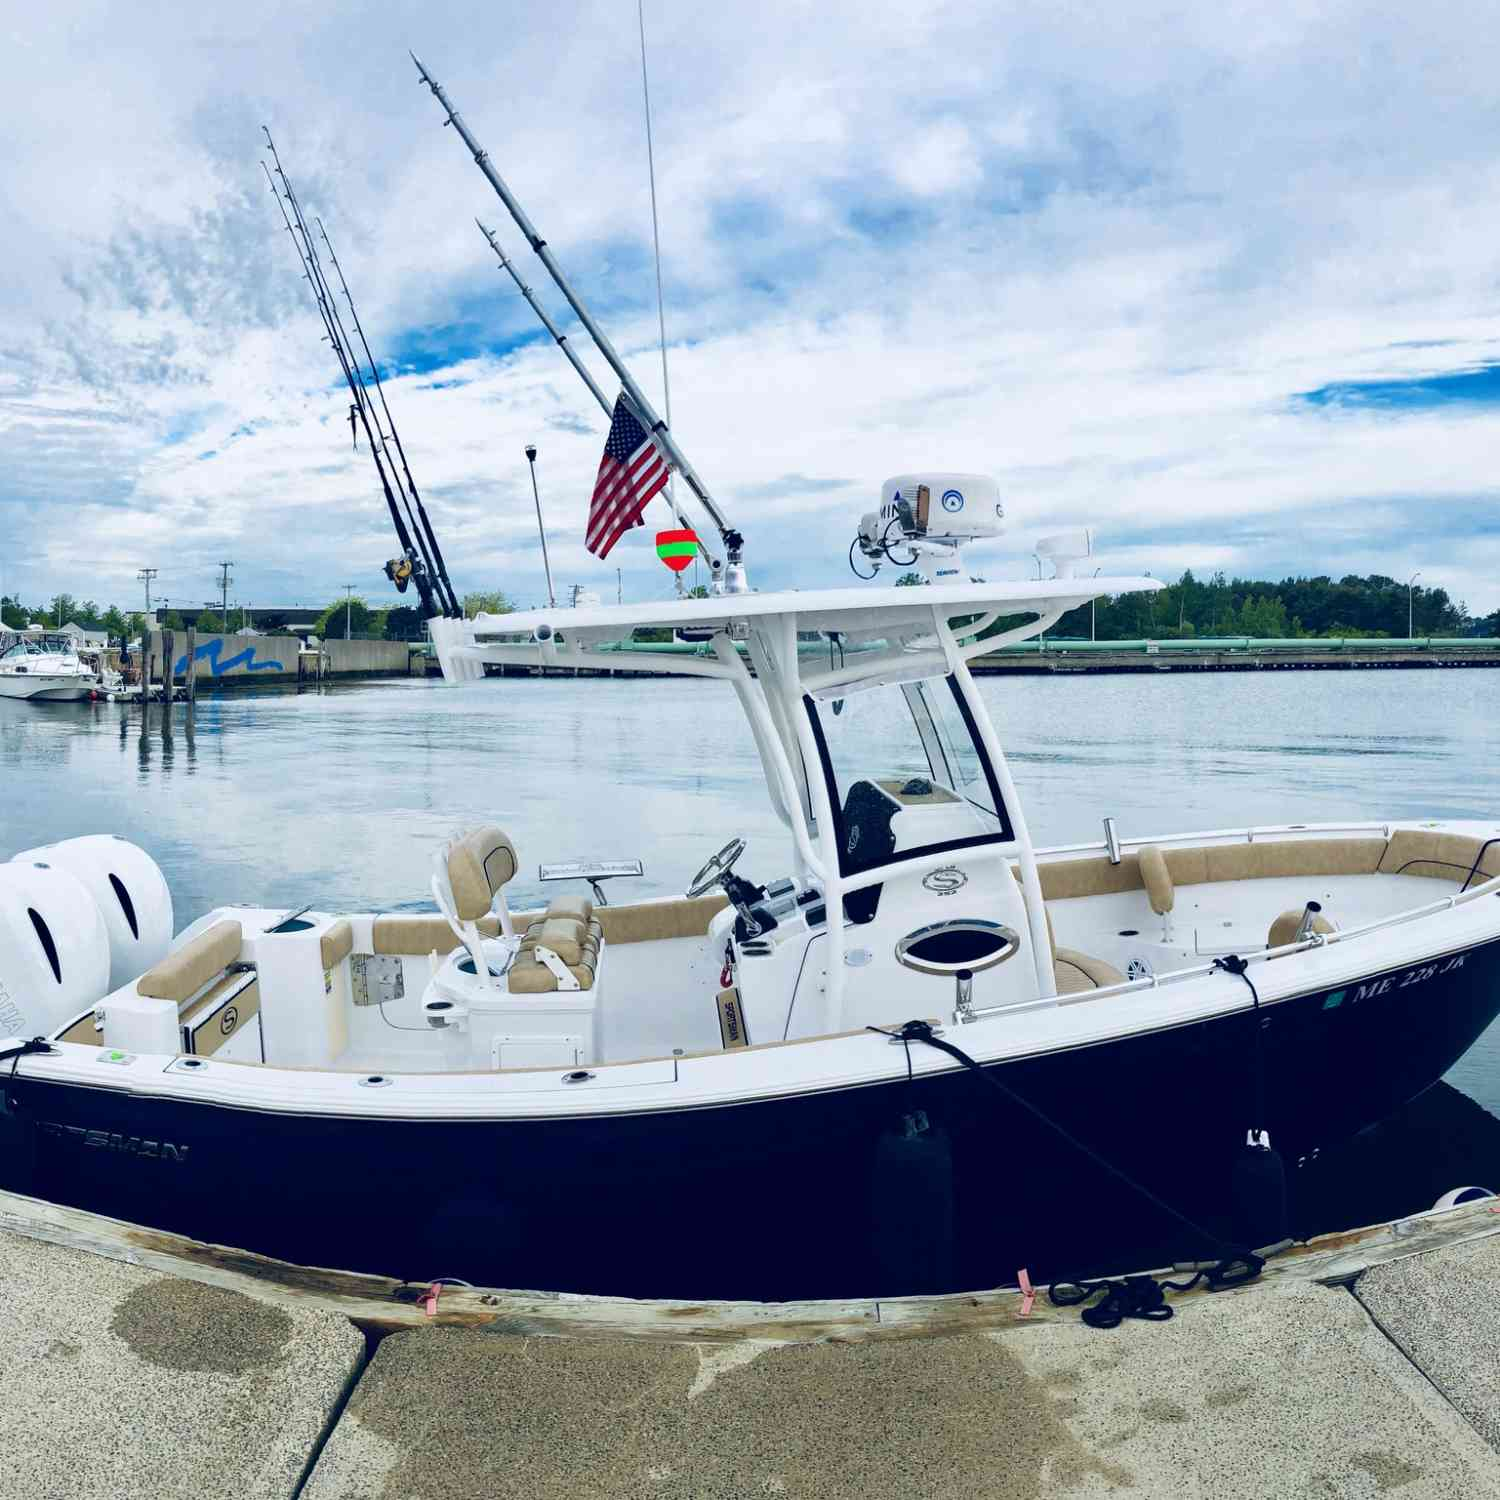 Title: Starboard side wide angle view - On board their Sportsman Open 252 Center Console - Location: Portland MAINE. Participating in the Photo Contest #SportsmanJuly2019